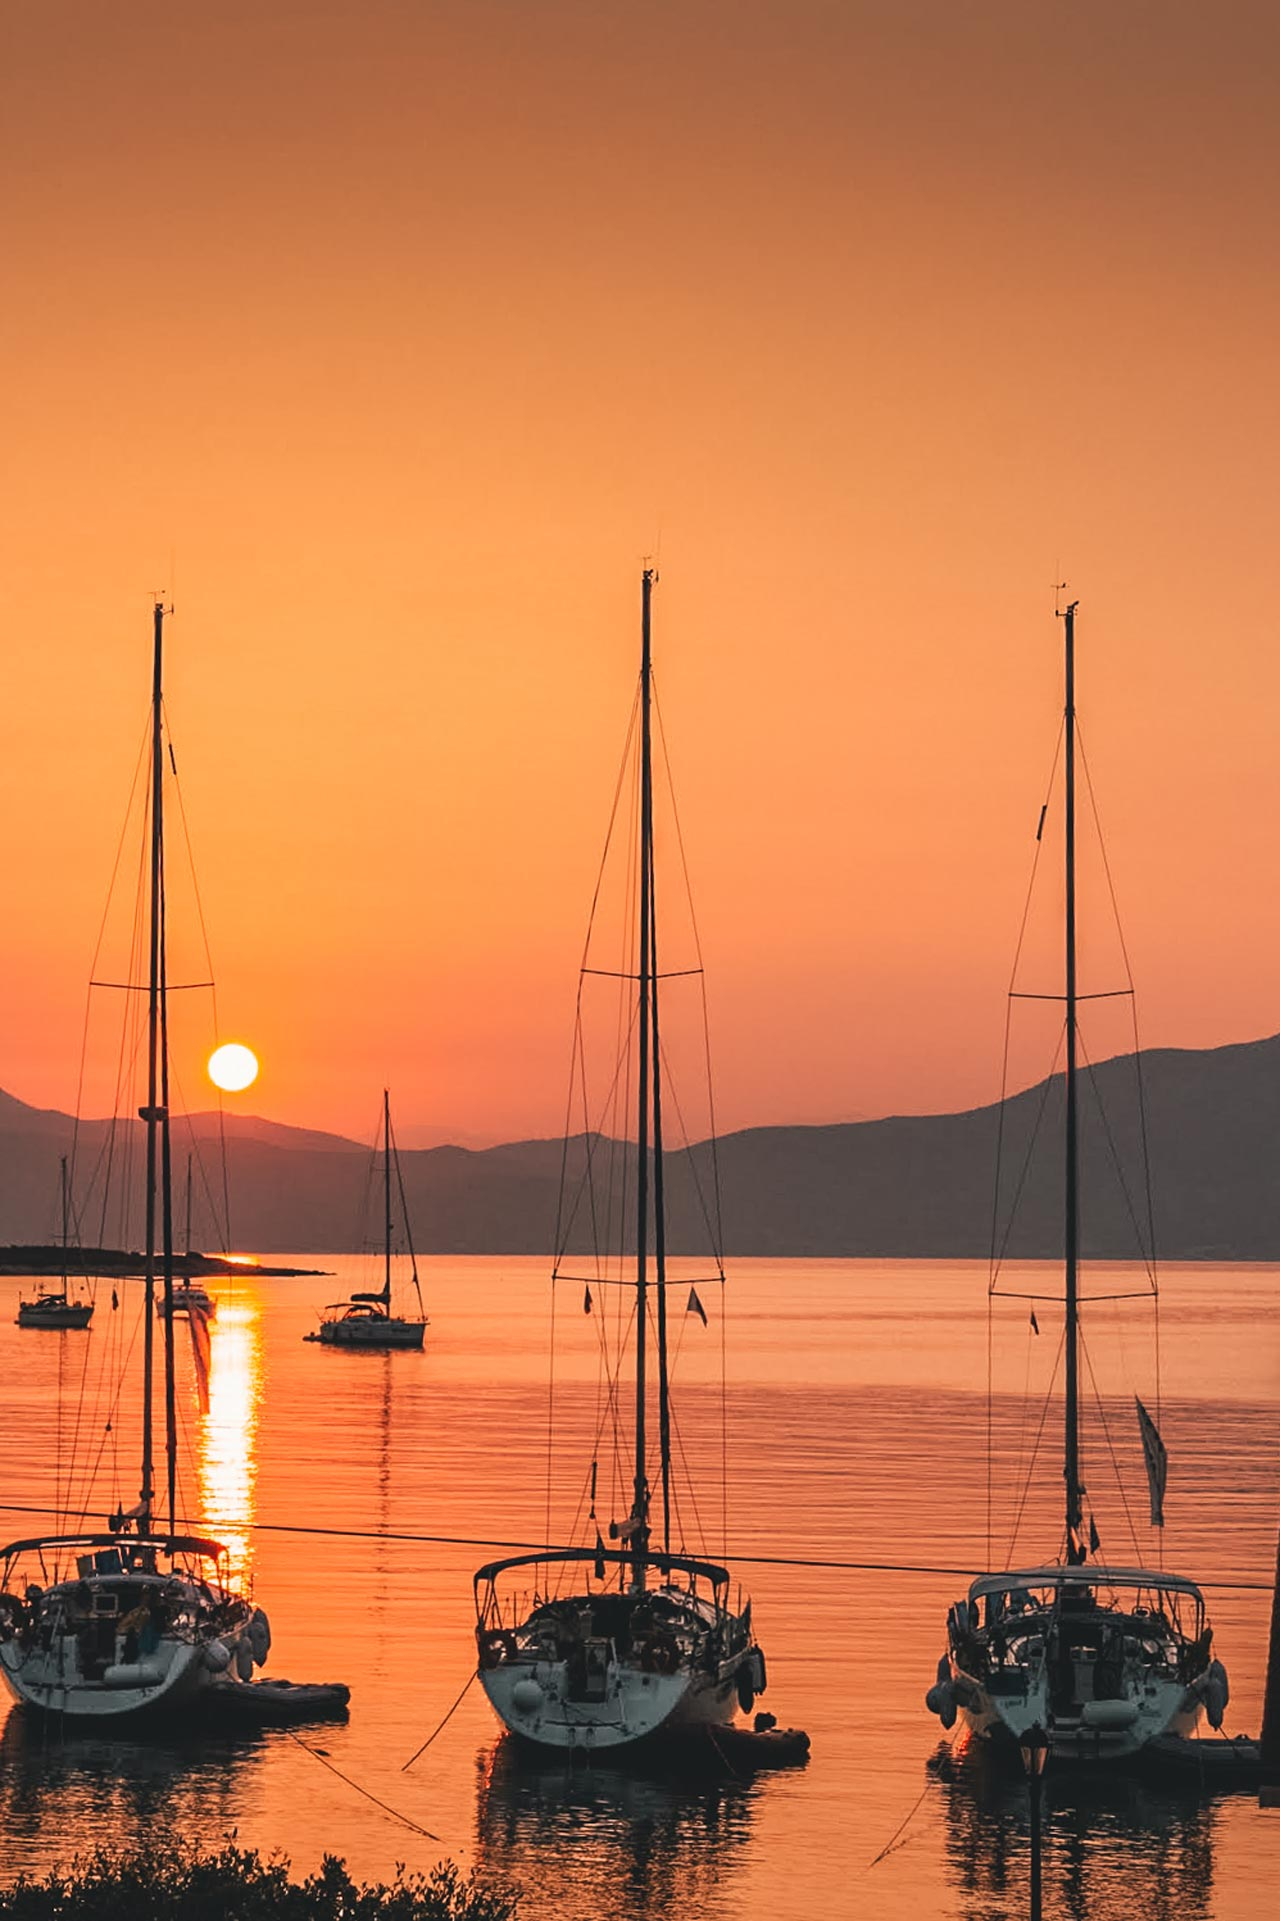 The sublime beaches and bays of Kastos have long been a secret of yacht owners sailing in the Ionian Sea and for good reason